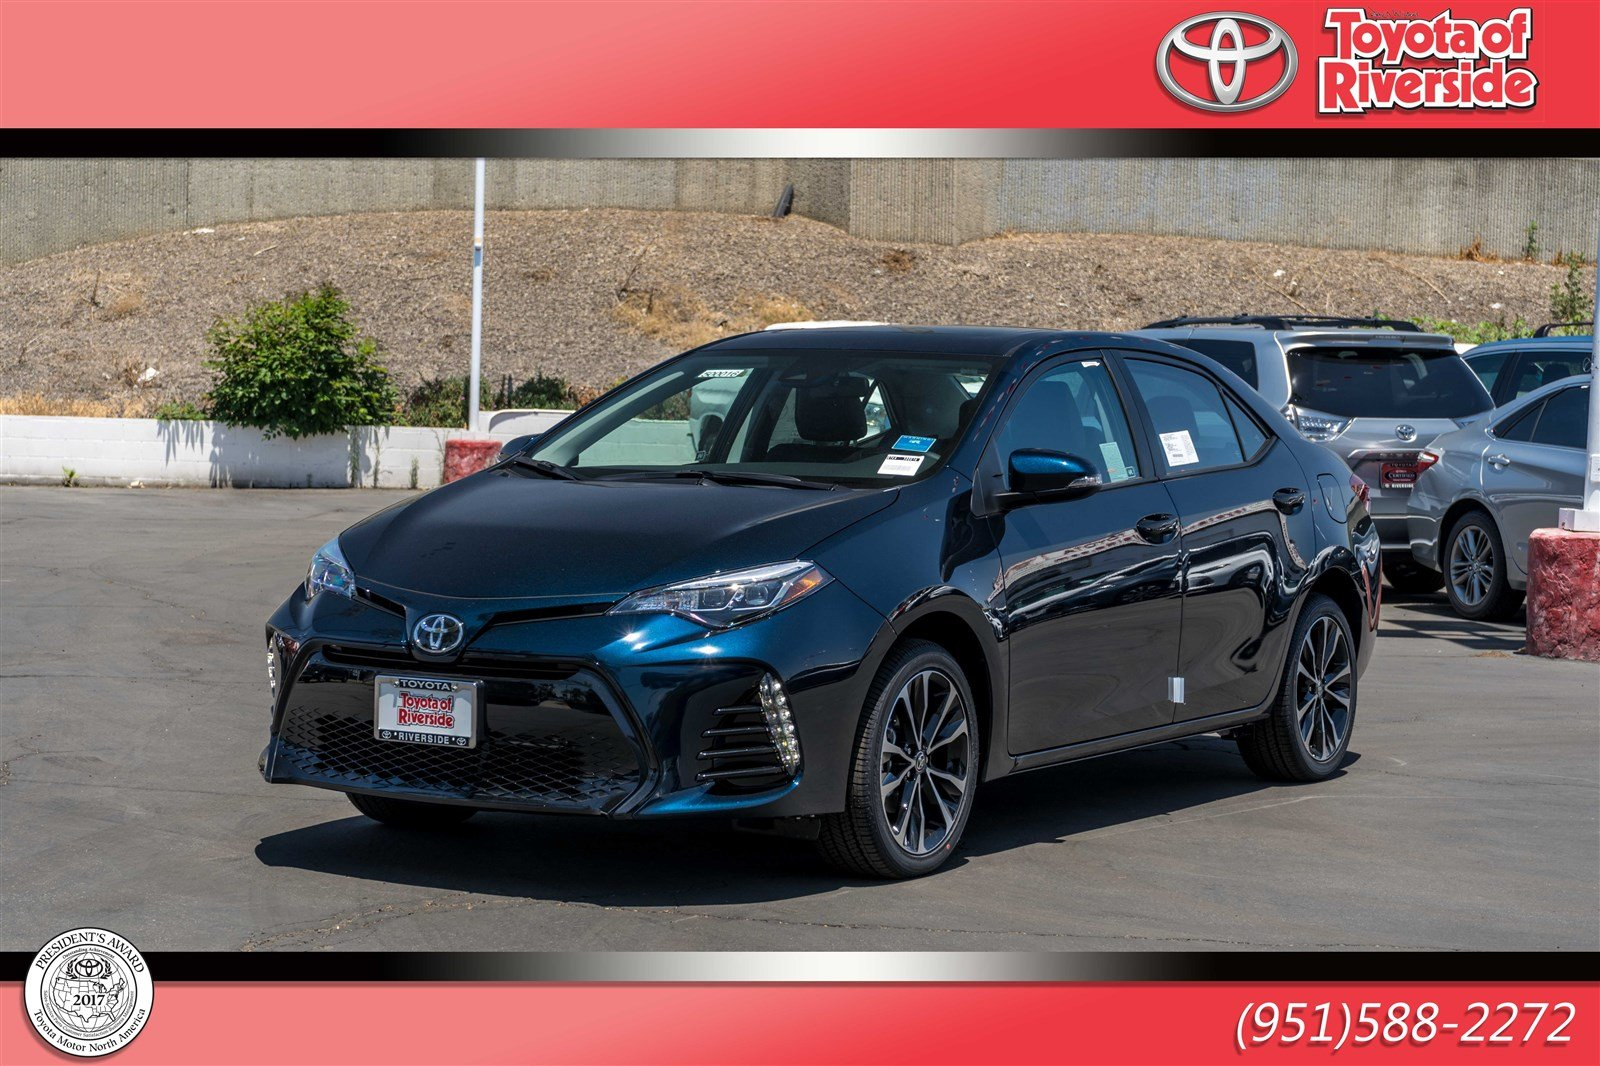 New 2019 Toyota Corolla Xse 4dr Car In Riverside 00500016 Toyota